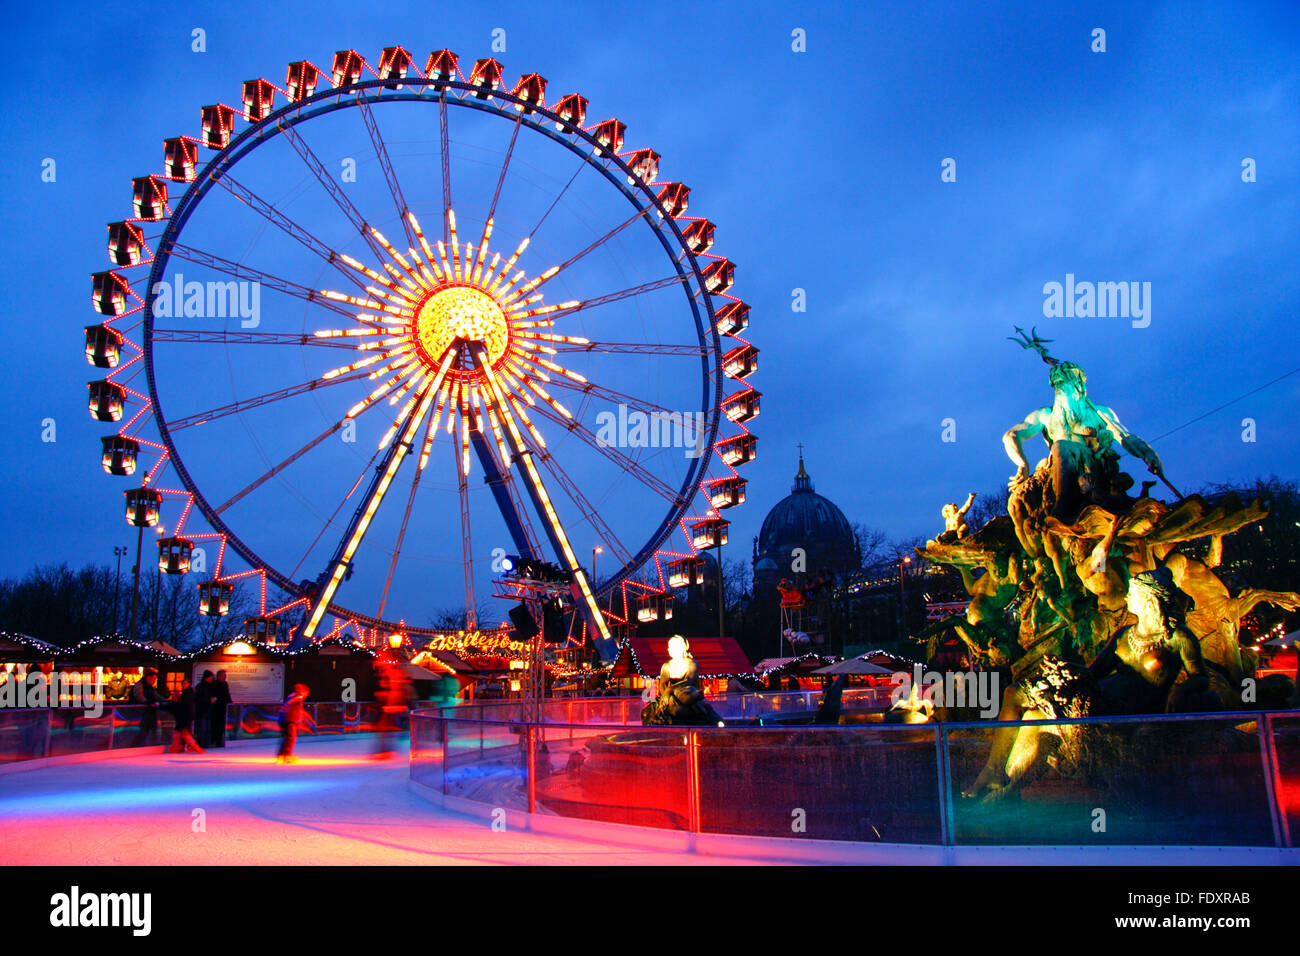 Ferris wheel in Alexanderplatz Christmas market , Berlin , Germany Stock Photo